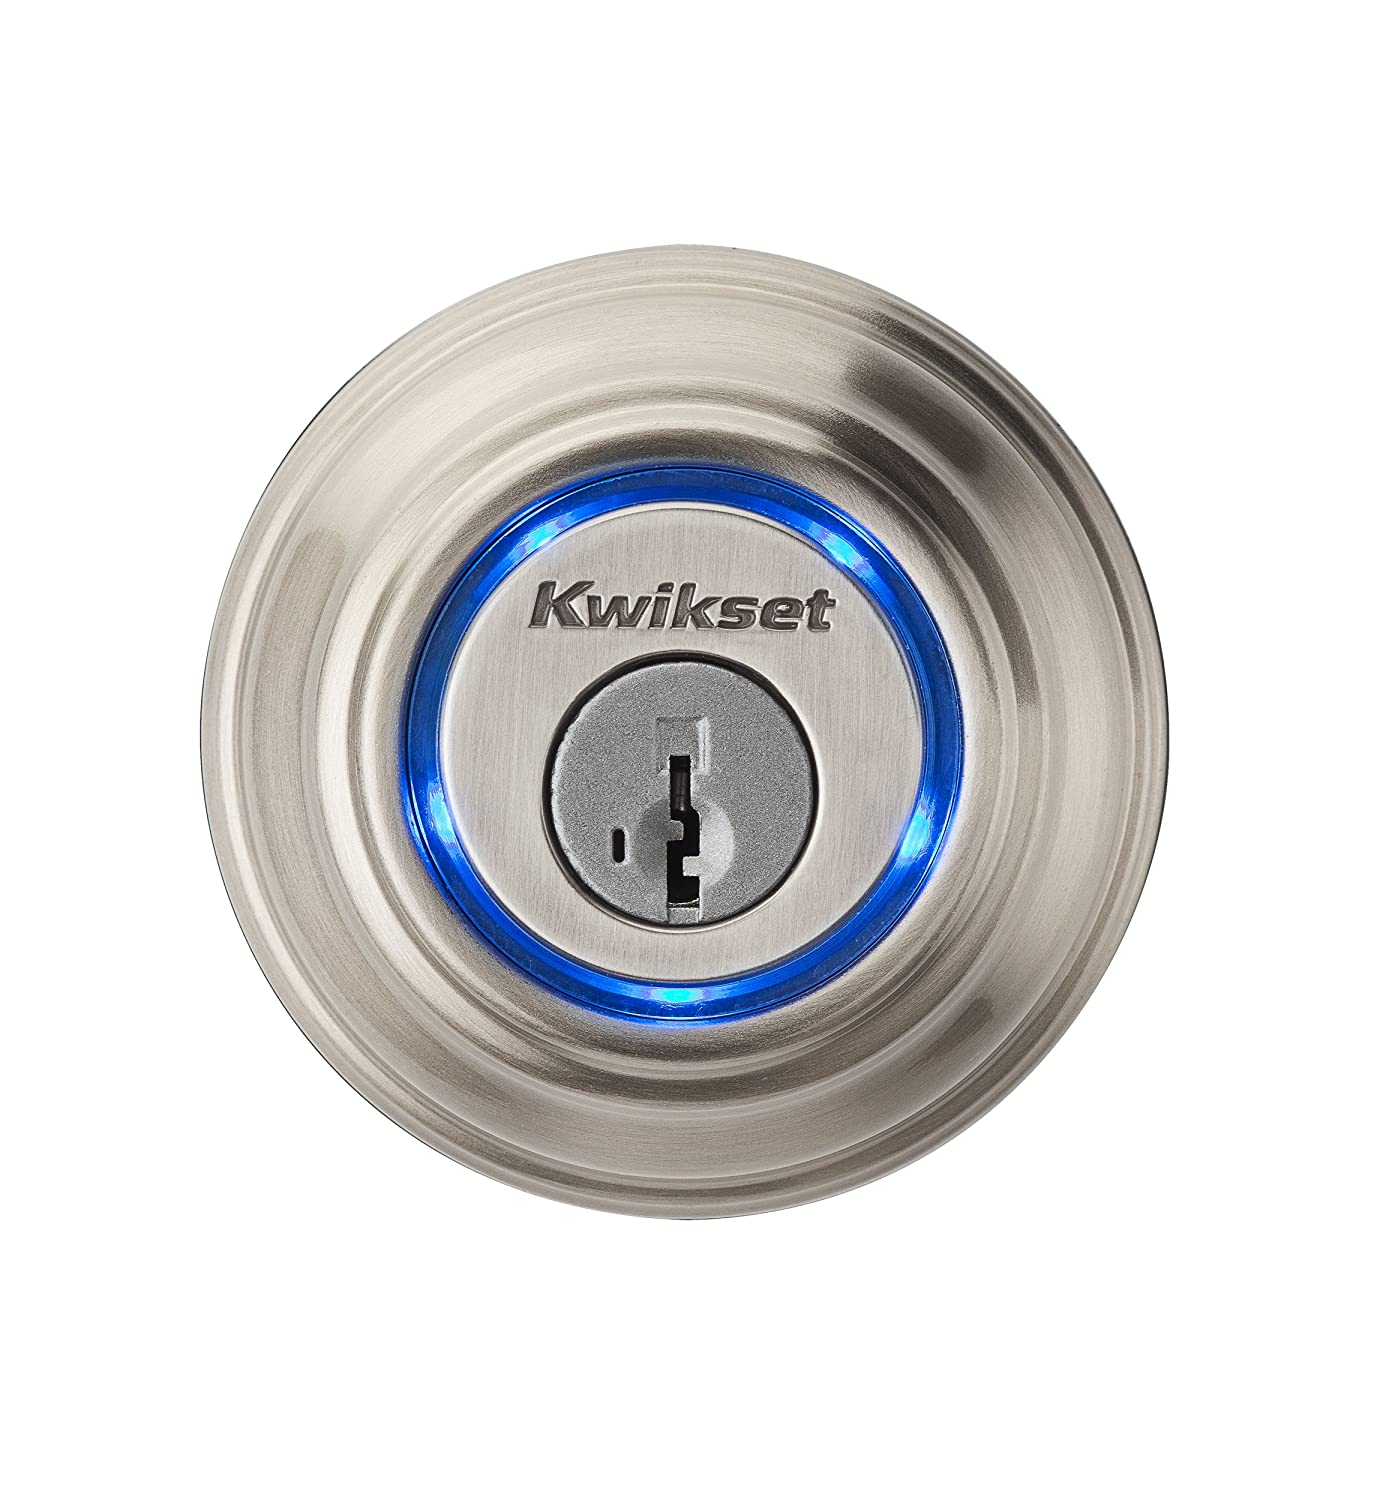 Kwikset Kevo 925 Bluetooth Enabled Deadbolt